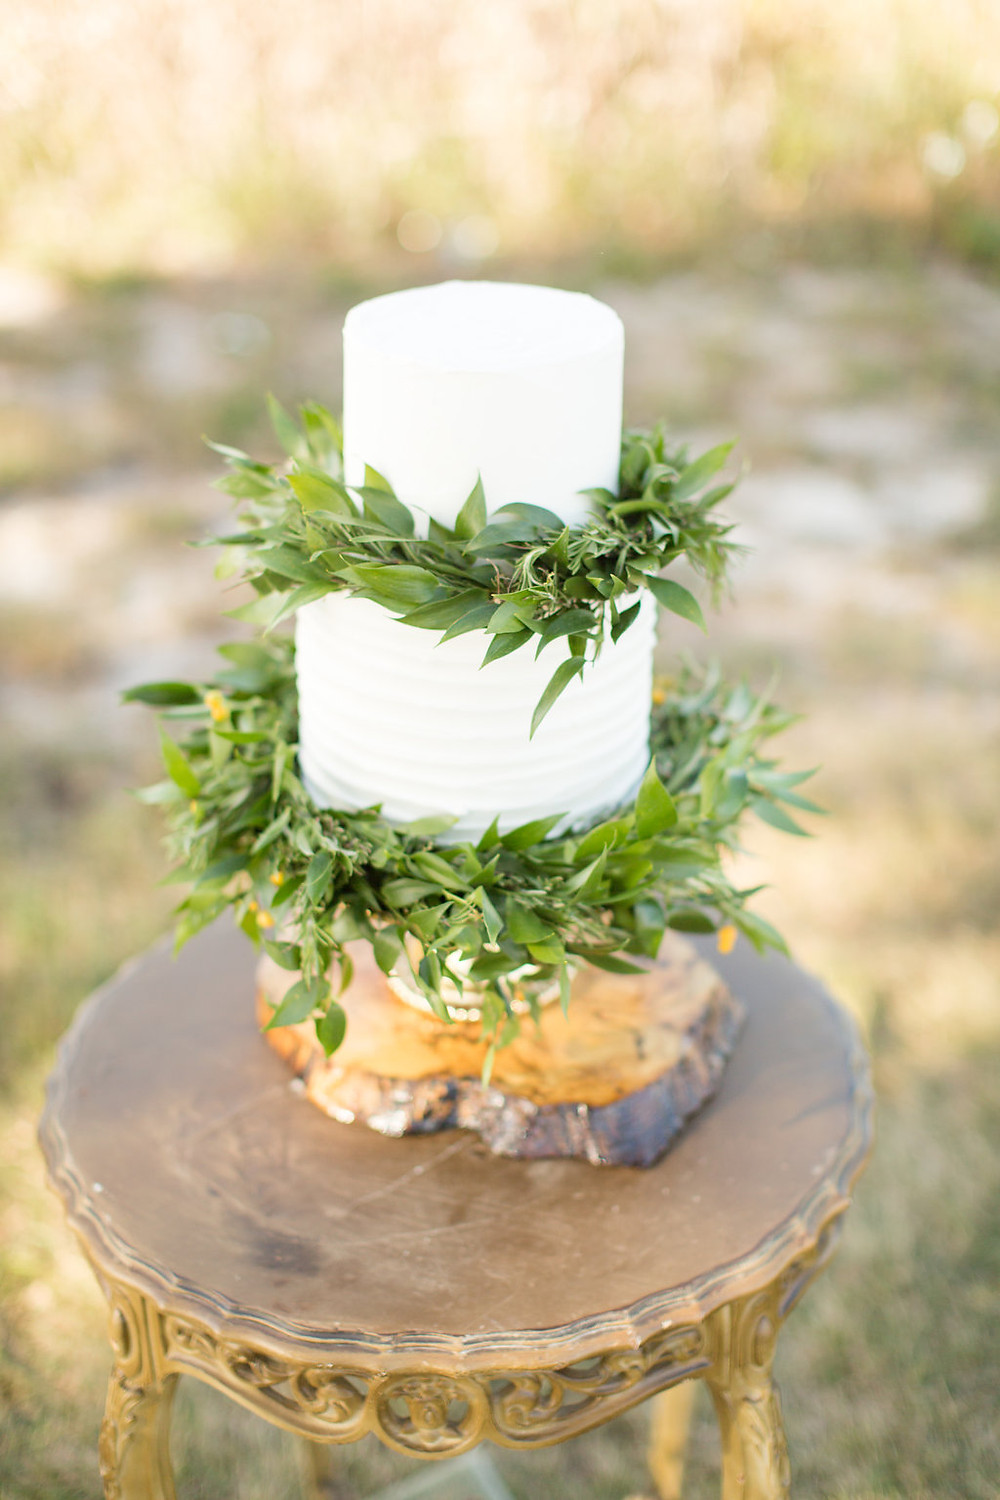 white wedding cake on gold florentine nesting tables for petite wedding ceremony in the fields